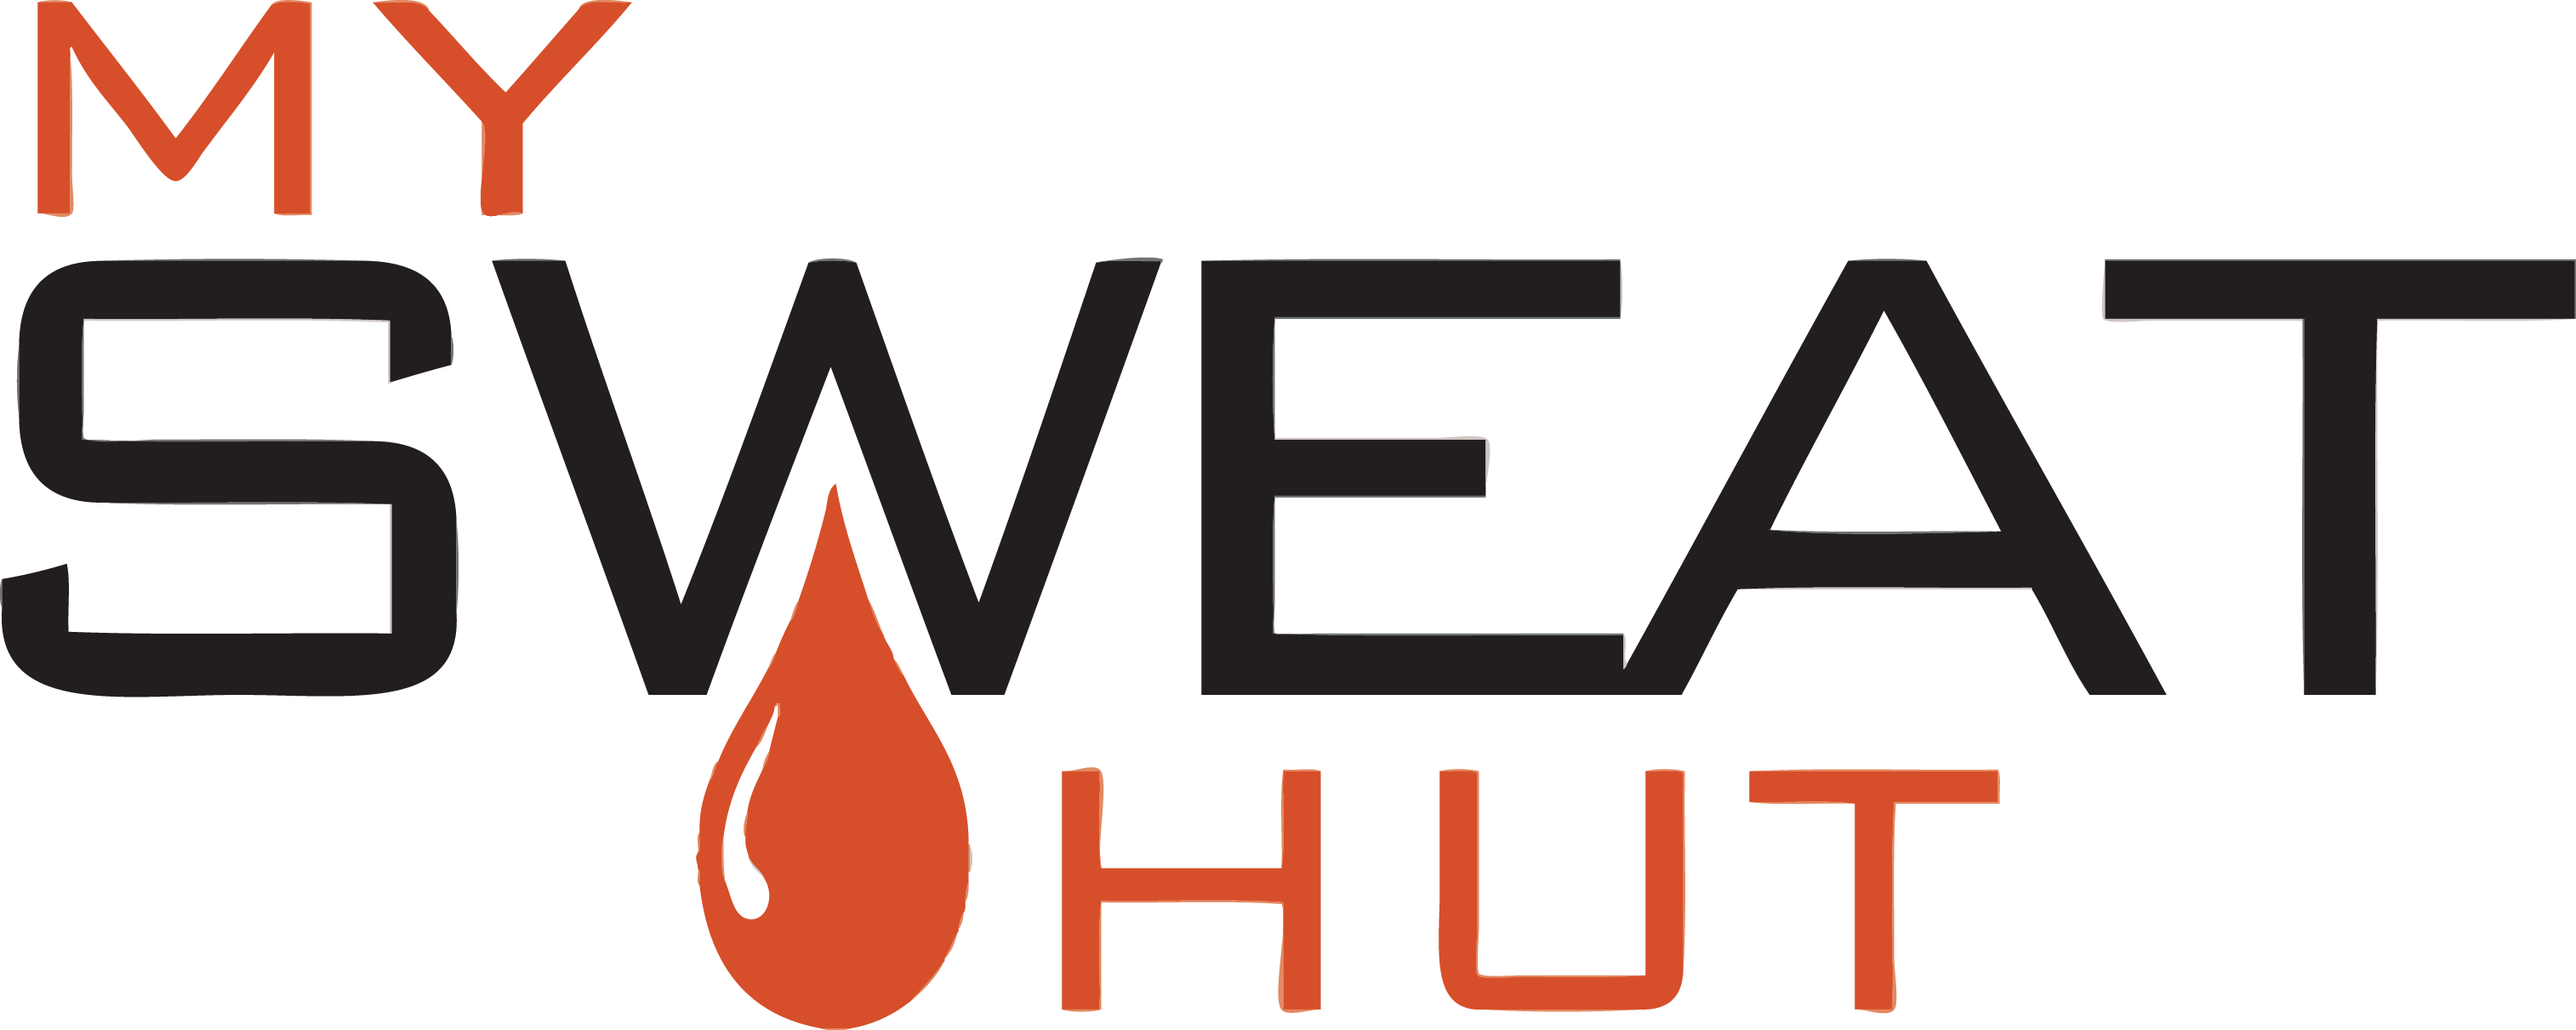 My Sweat Hut Logo